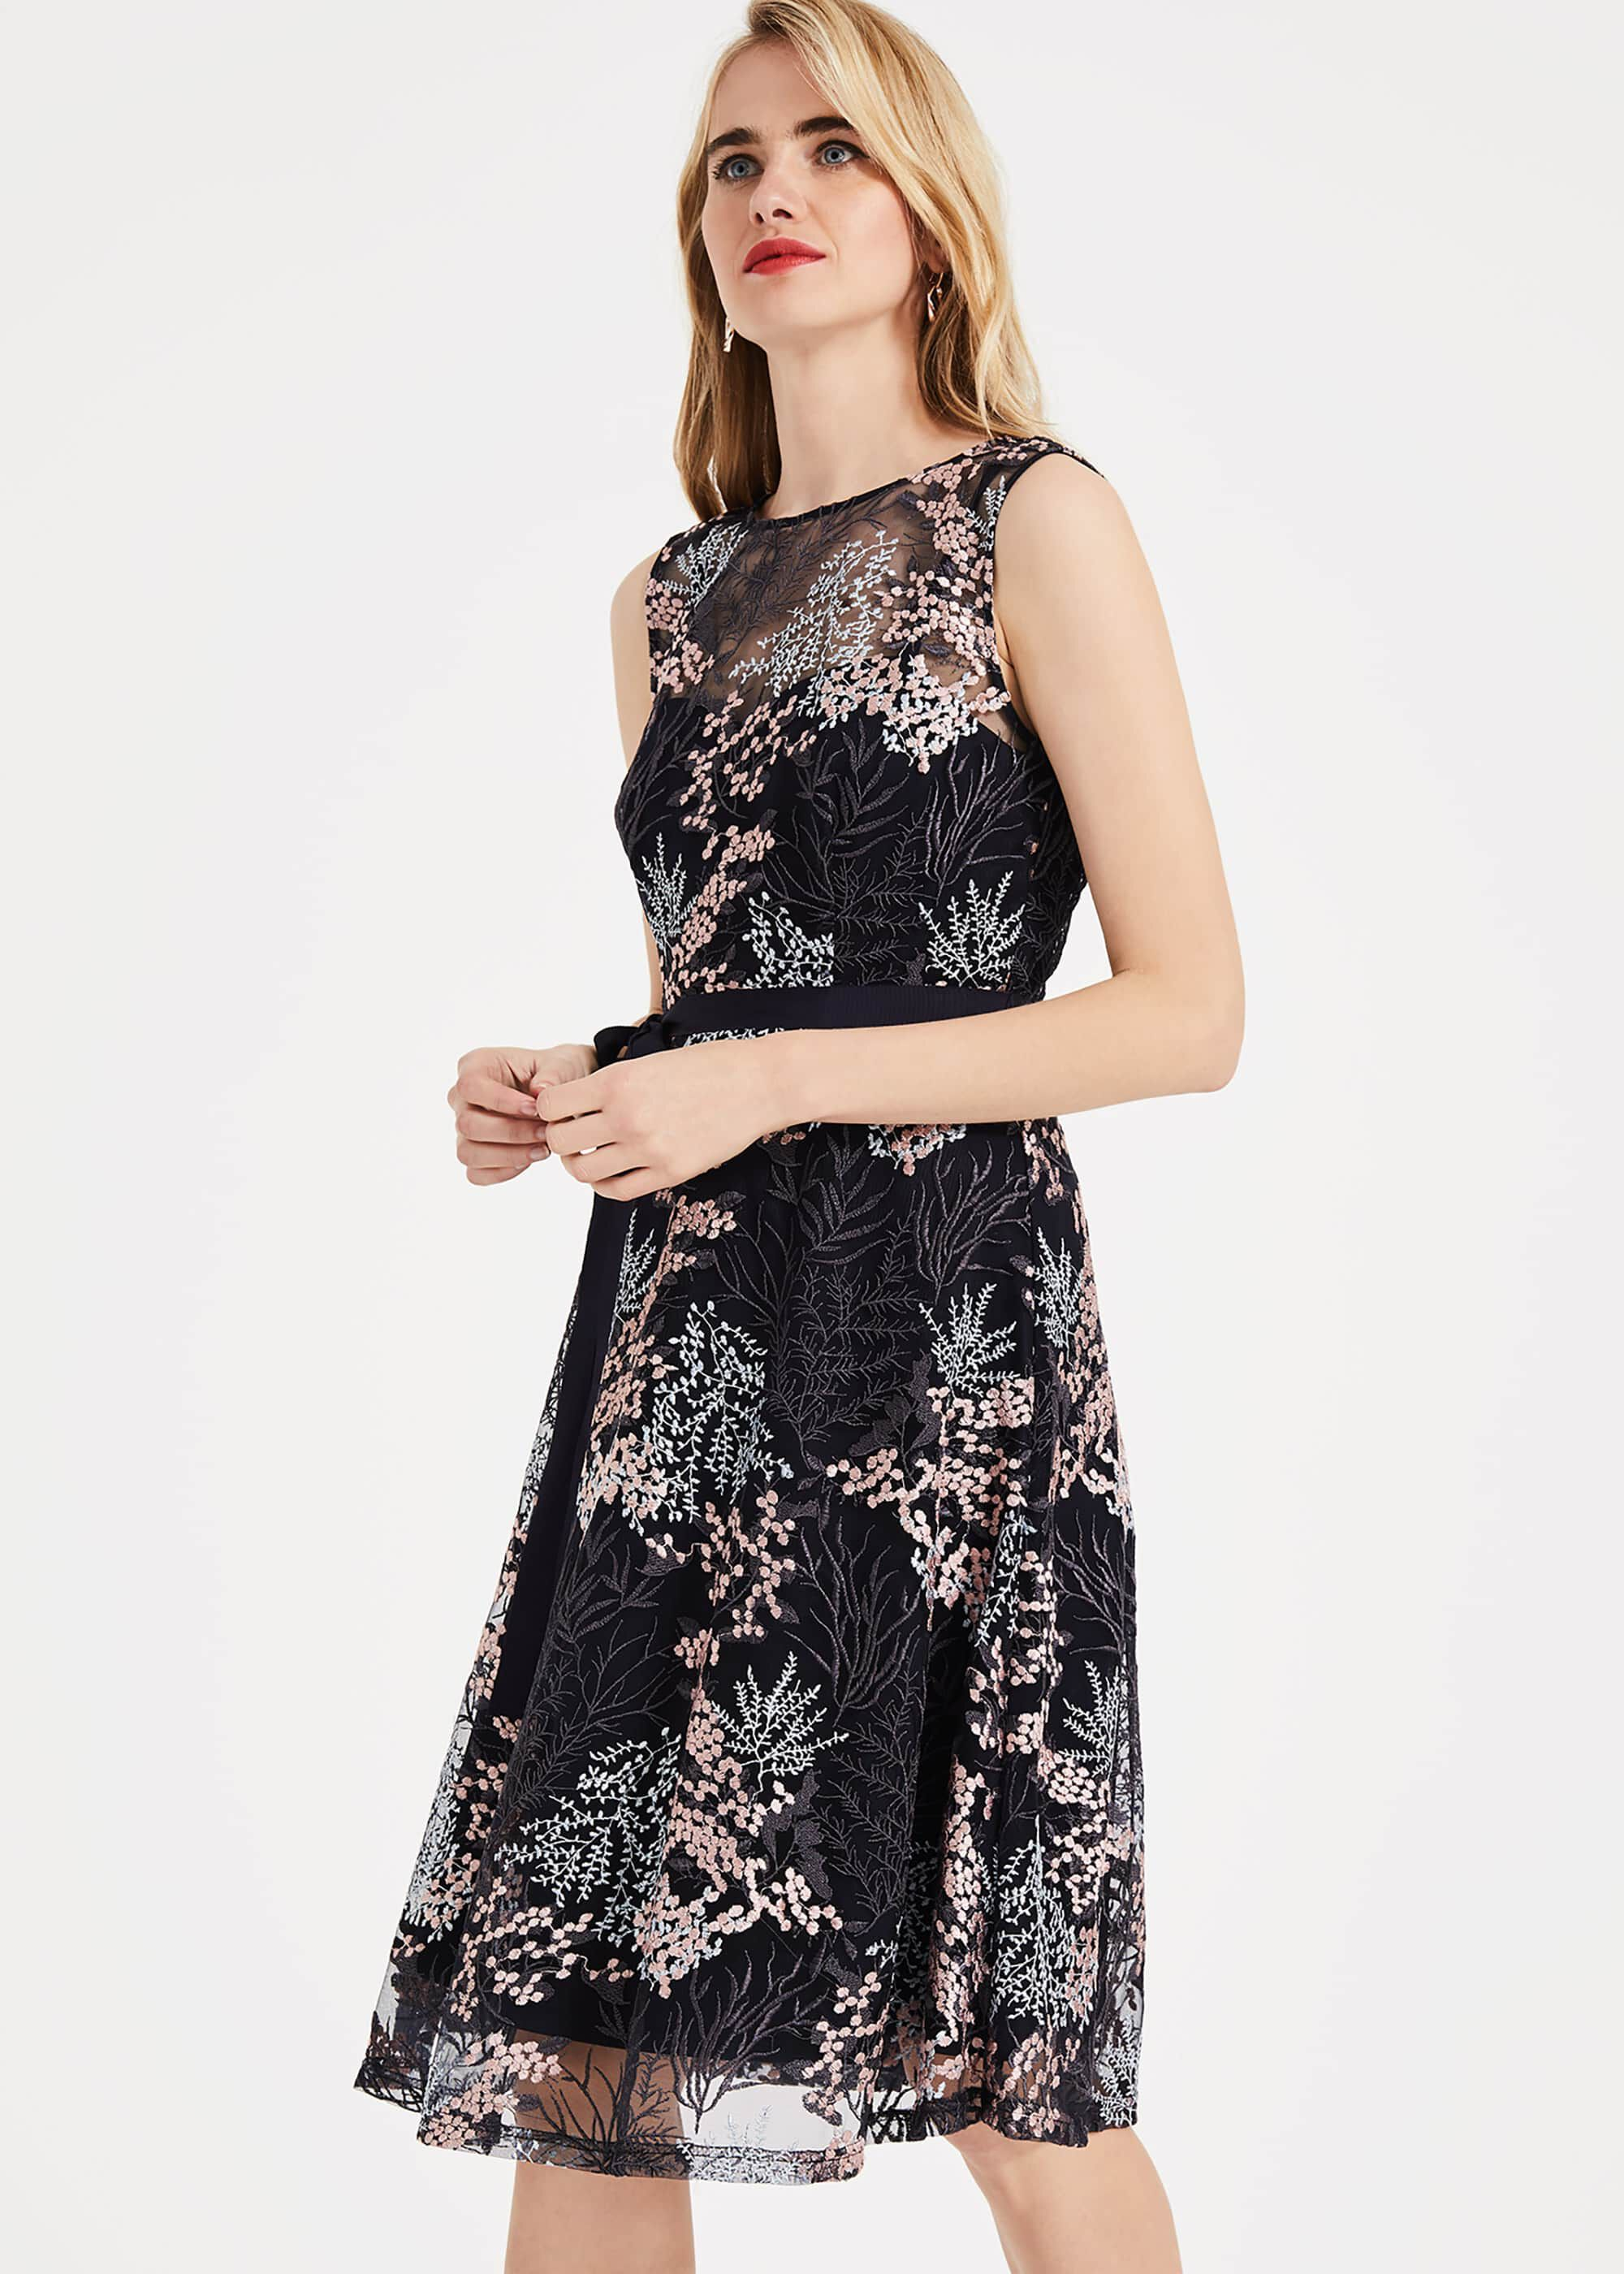 Phase Eight Audrina Embroidered Dress, Multicoloured, Fit & Flare, Occasion Dress